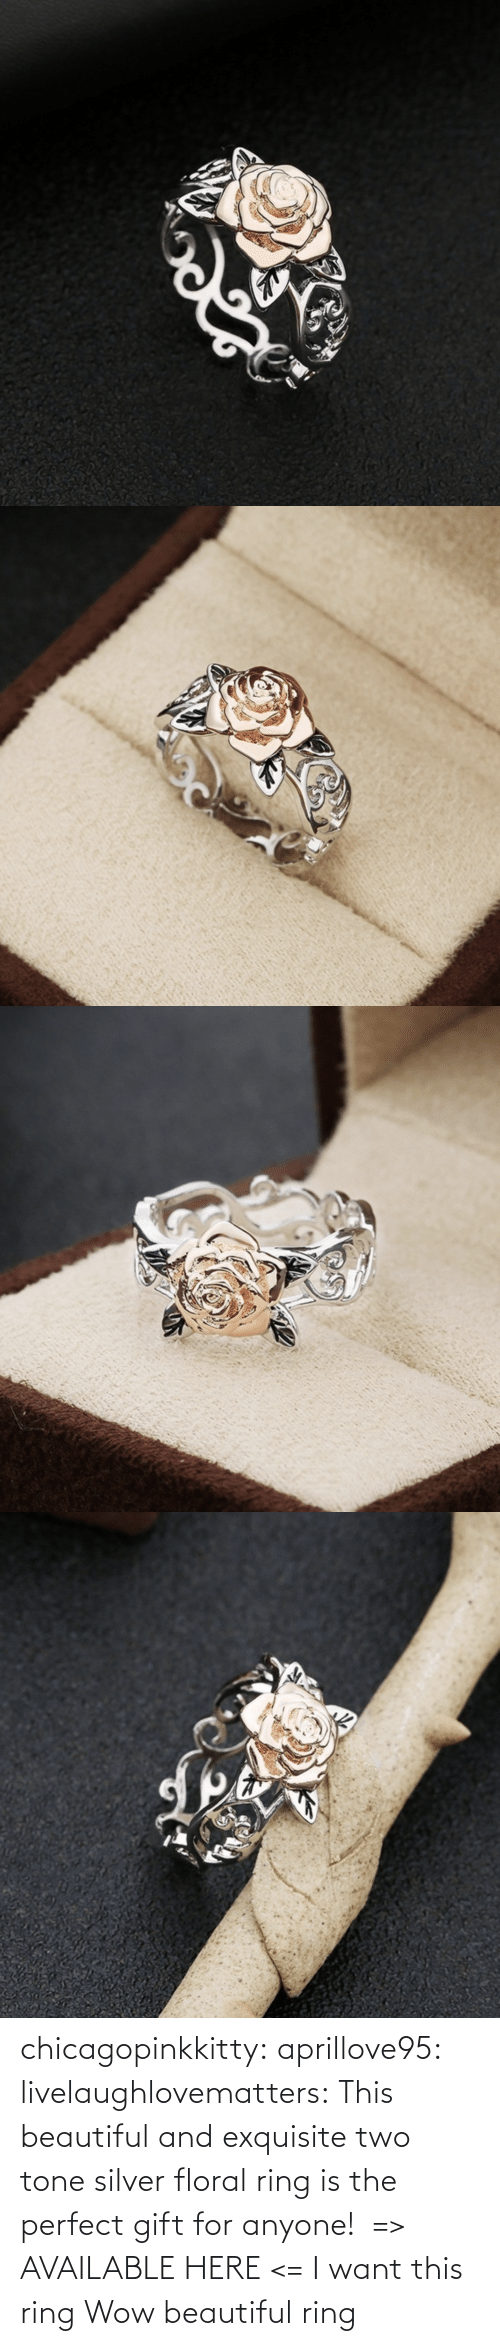 Silver: chicagopinkkitty: aprillove95:  livelaughlovematters:  This beautiful and exquisite two tone silver floral ring is the perfect gift for anyone!  => AVAILABLE HERE <=    I want this ring     Wow beautiful ring